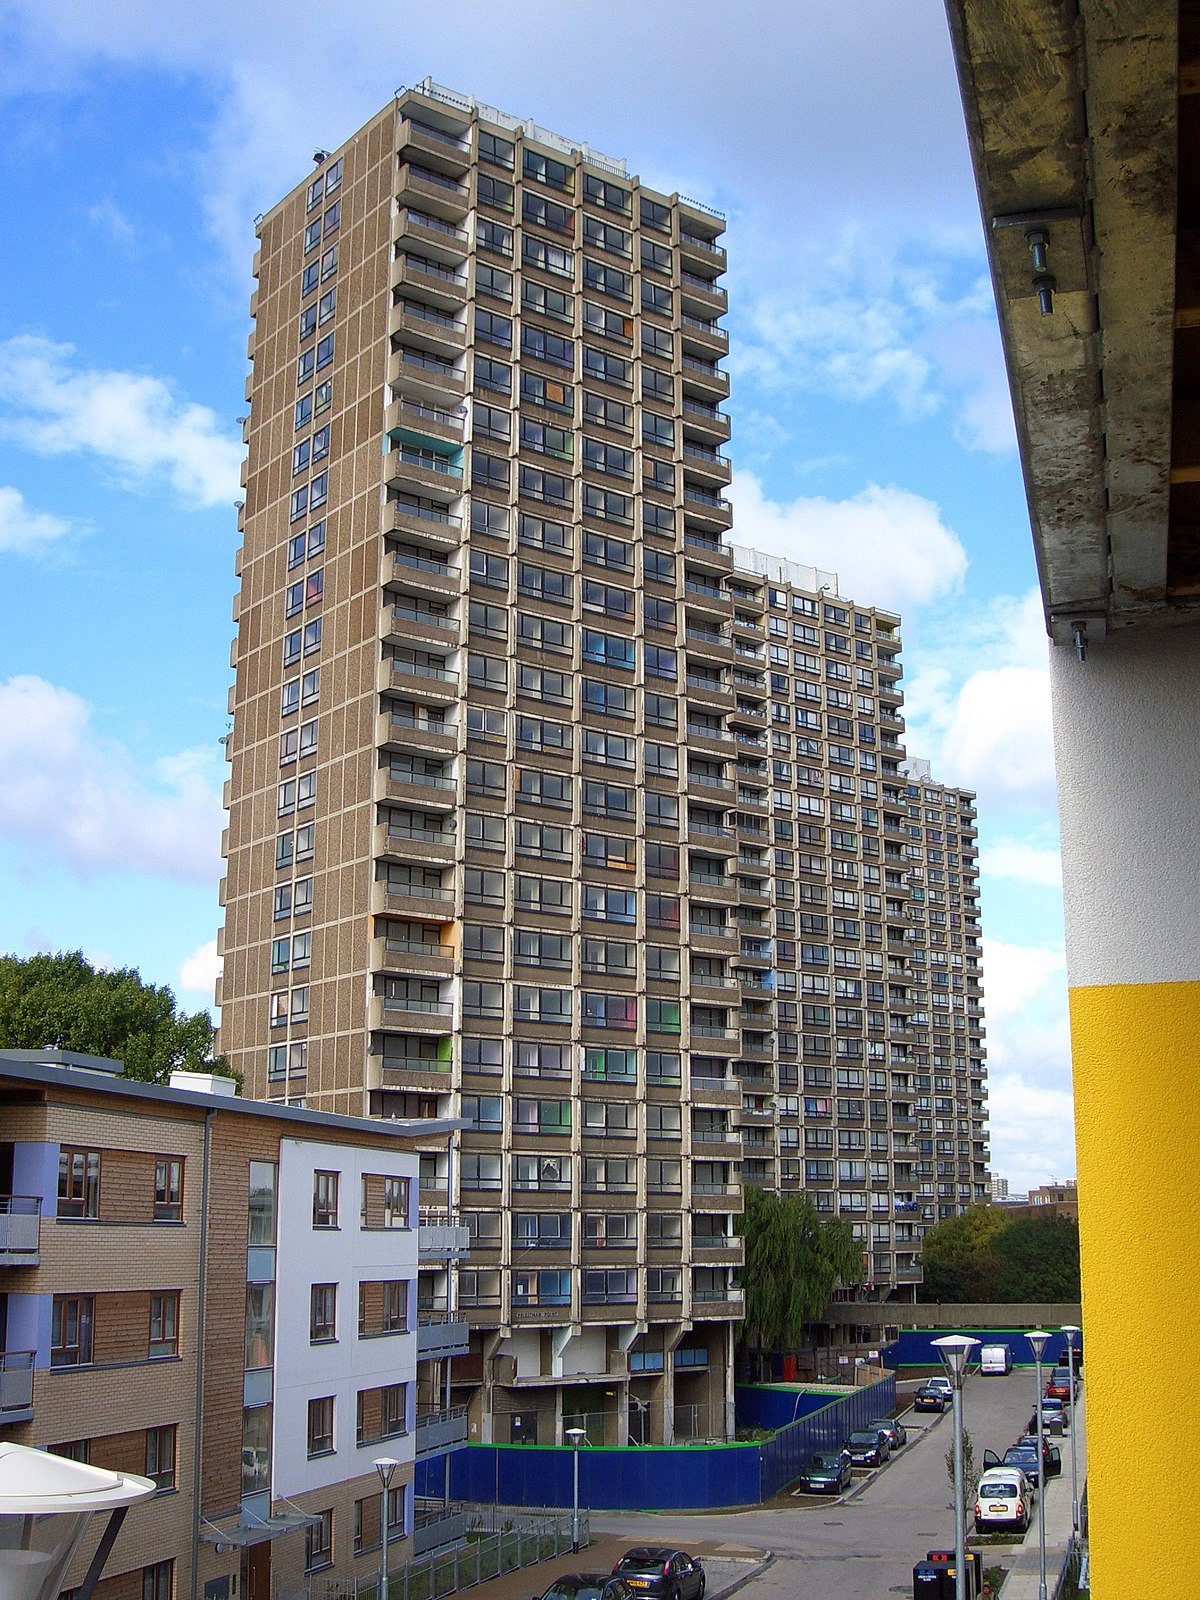 Tower blocks in great britain wikipedia for Building an estate